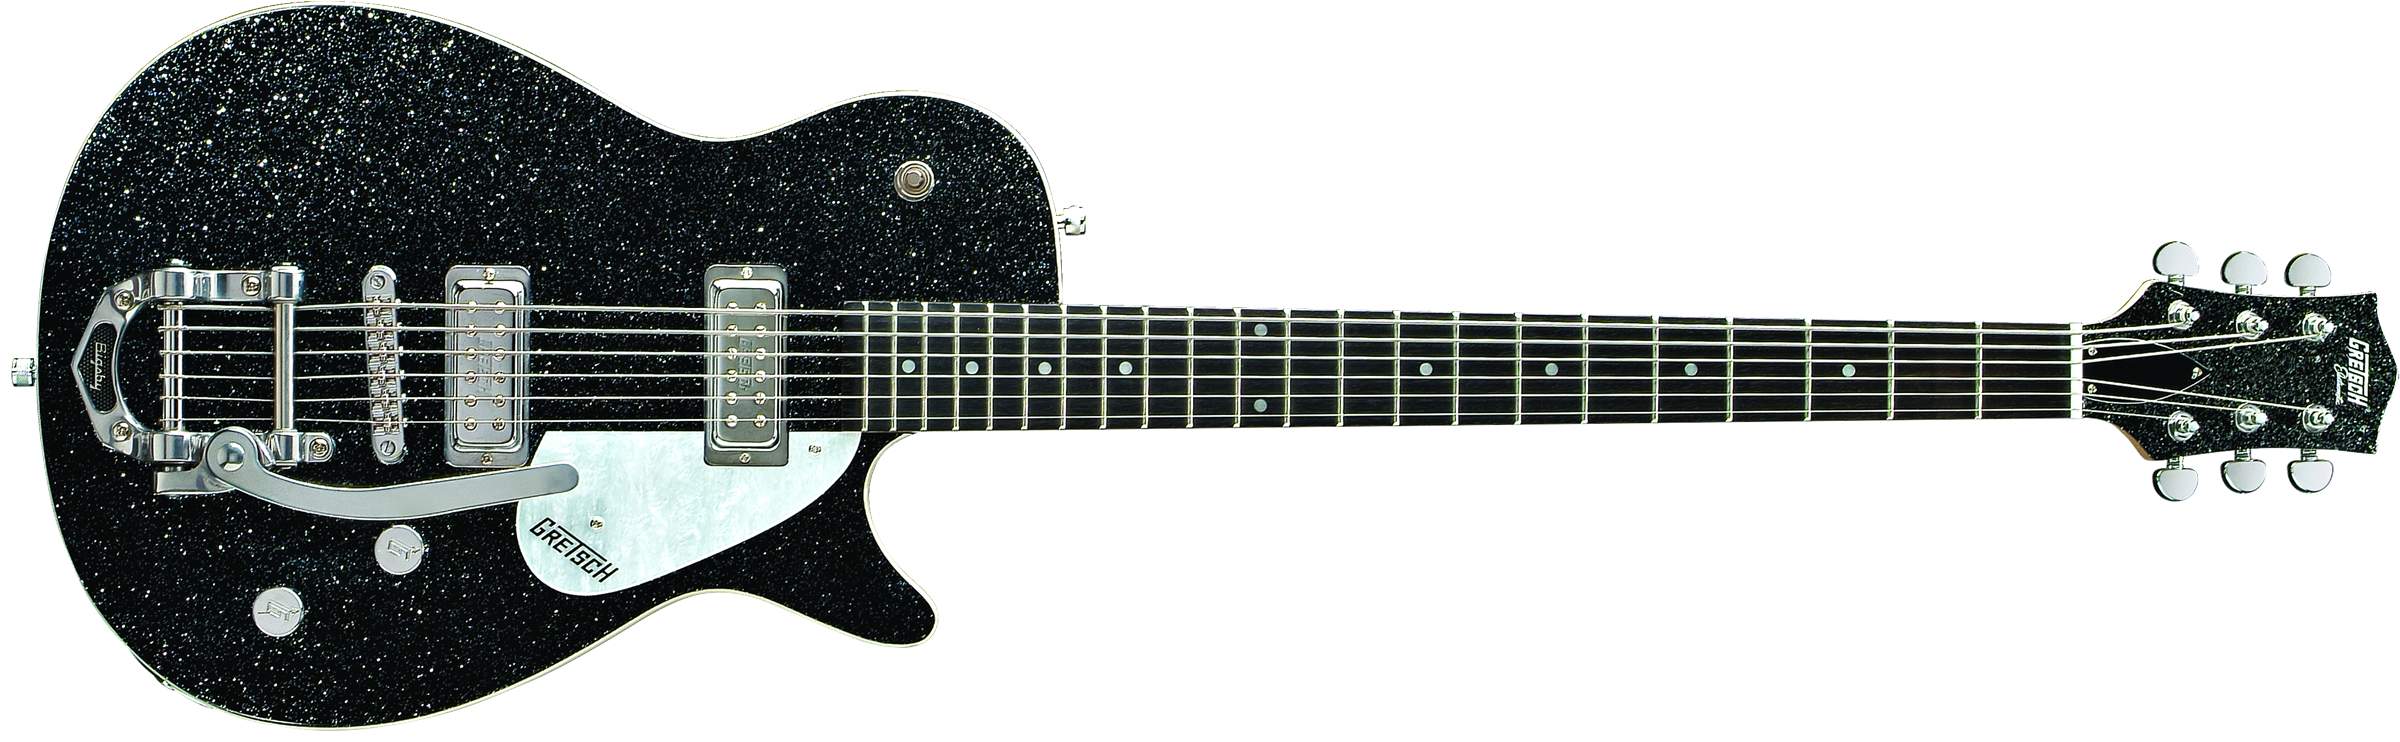 Clipart guitar gray. Electric icon web icons